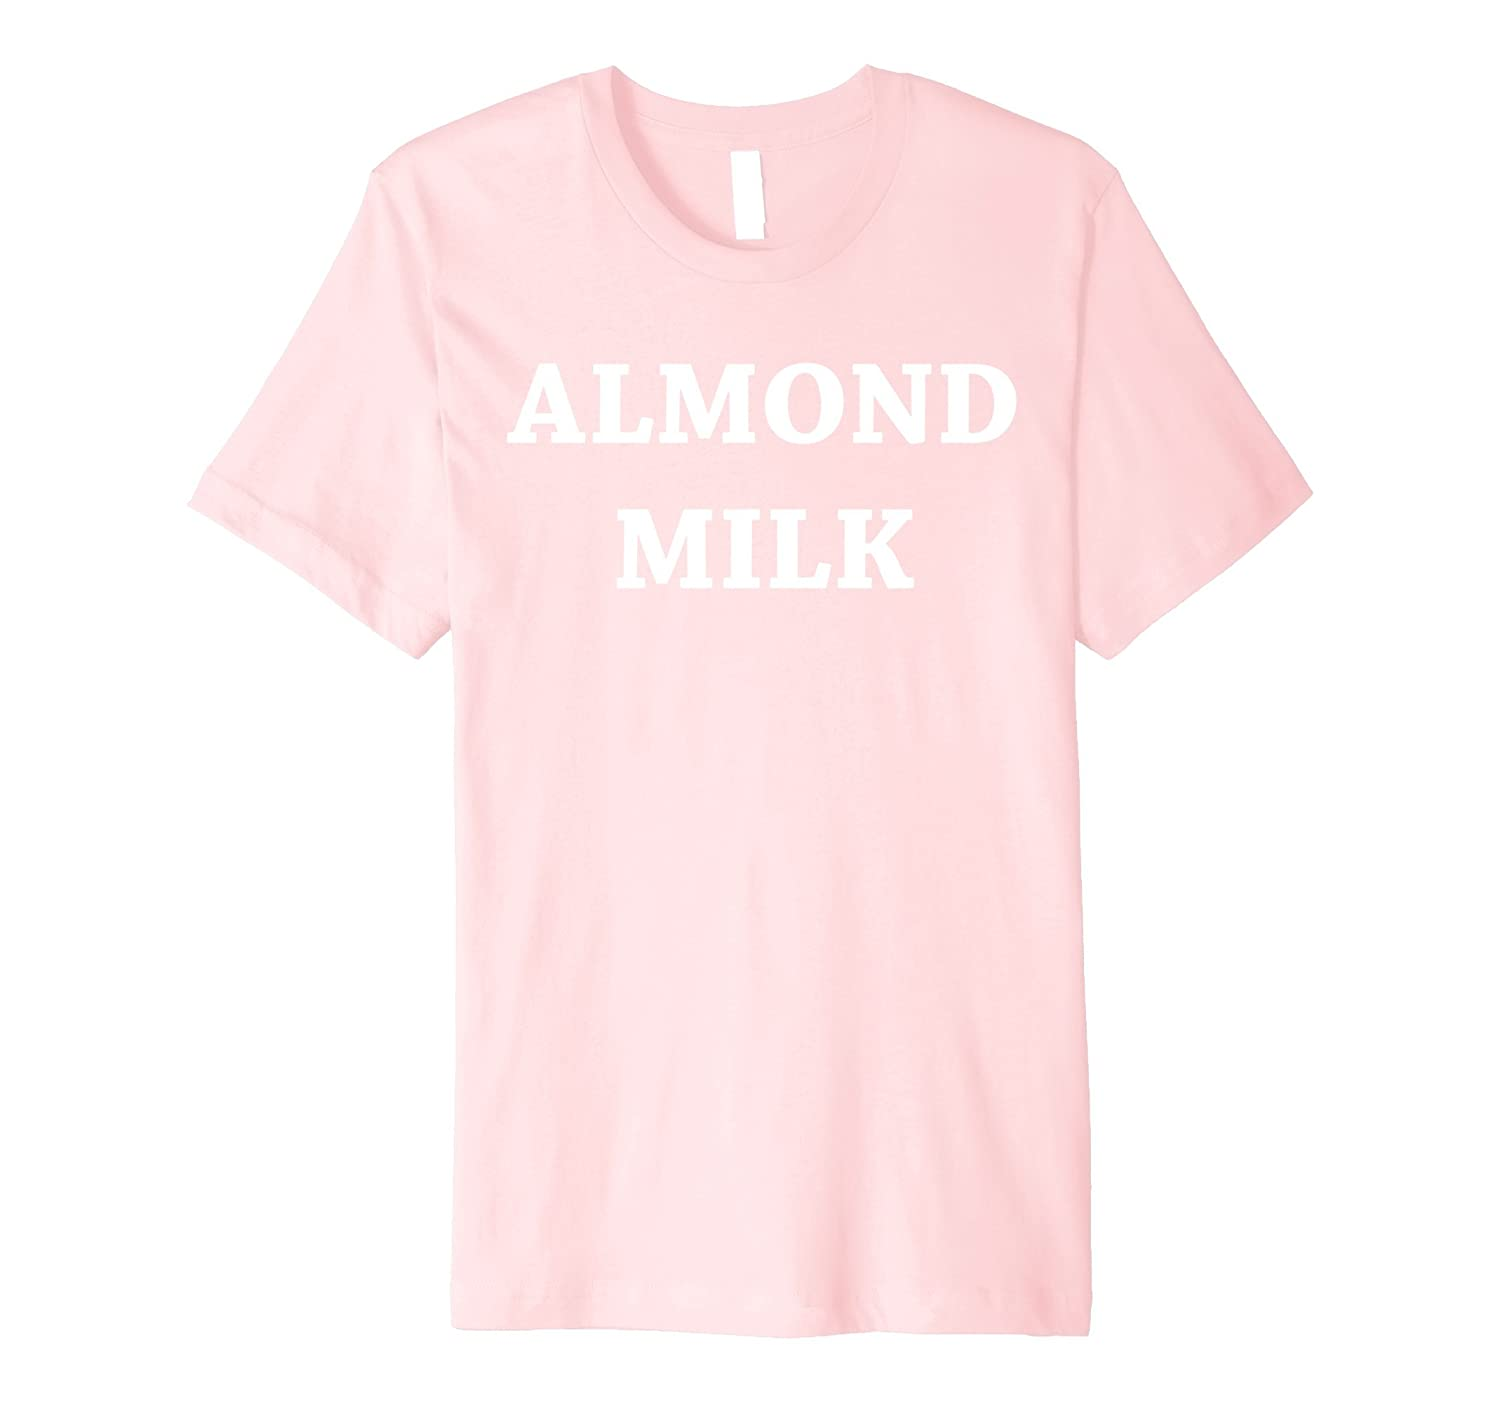 Amazon.com: Almond milk T-shirt - cool birthday gift for Almonds lovers: Clothing